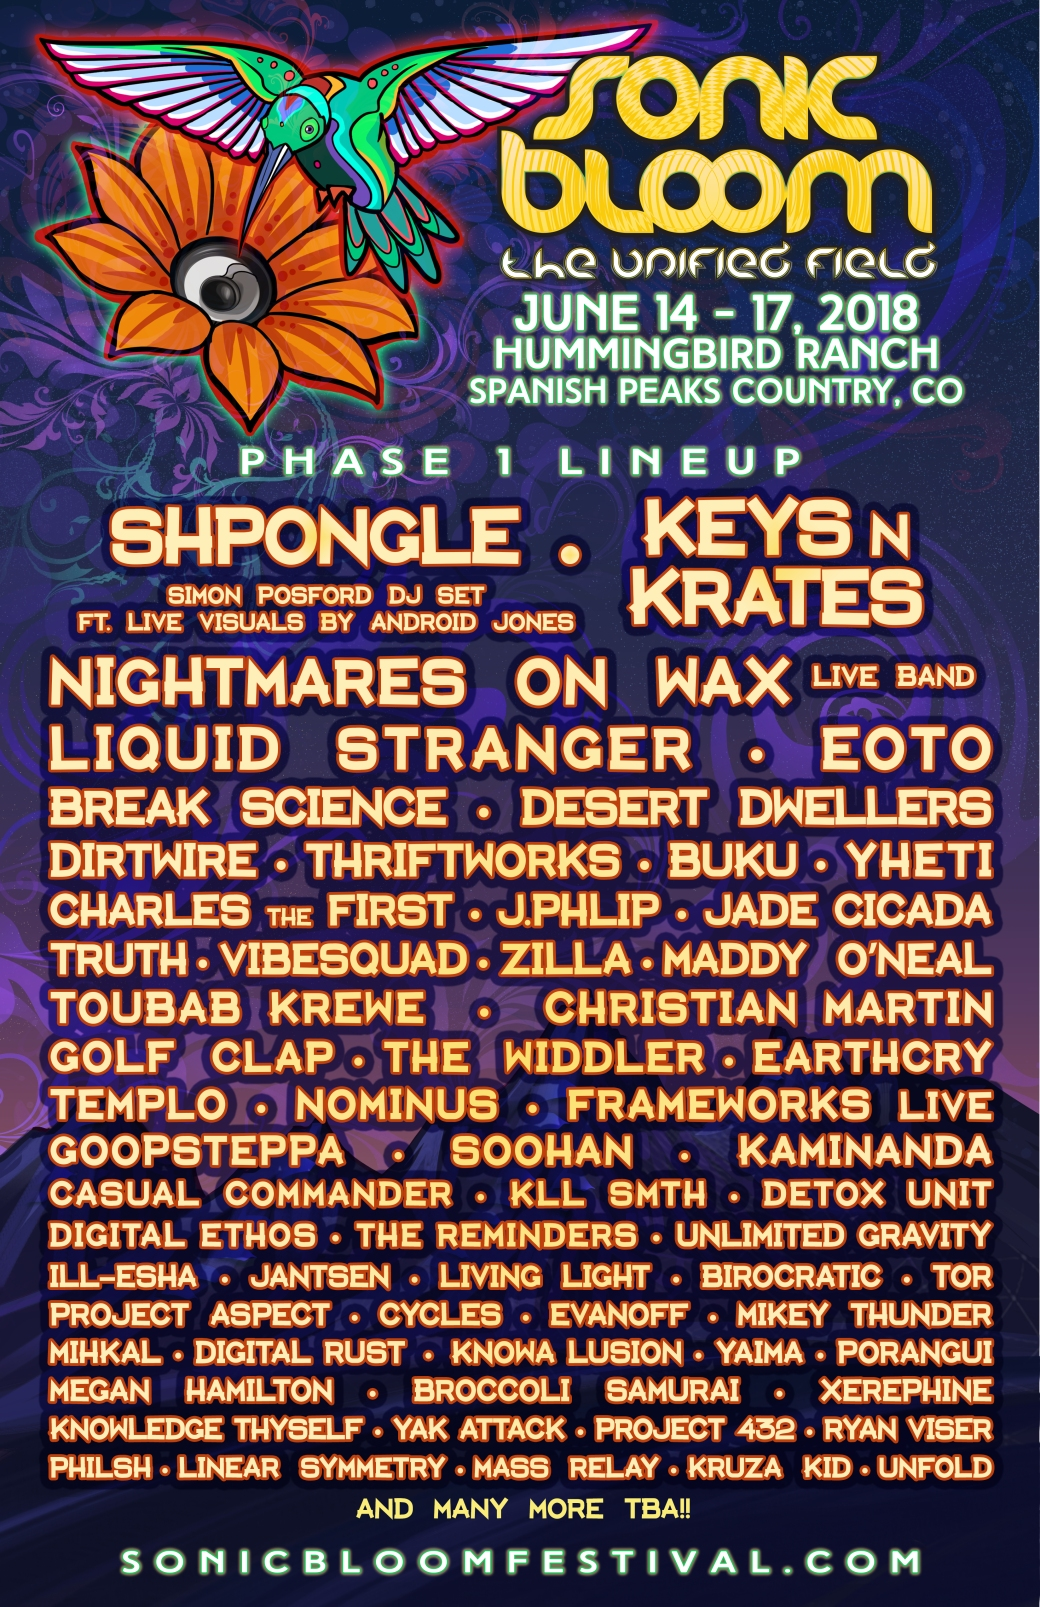 2018-06-14 THRU 2018-06-17 - SONIC BLOOM POSTER.jpg